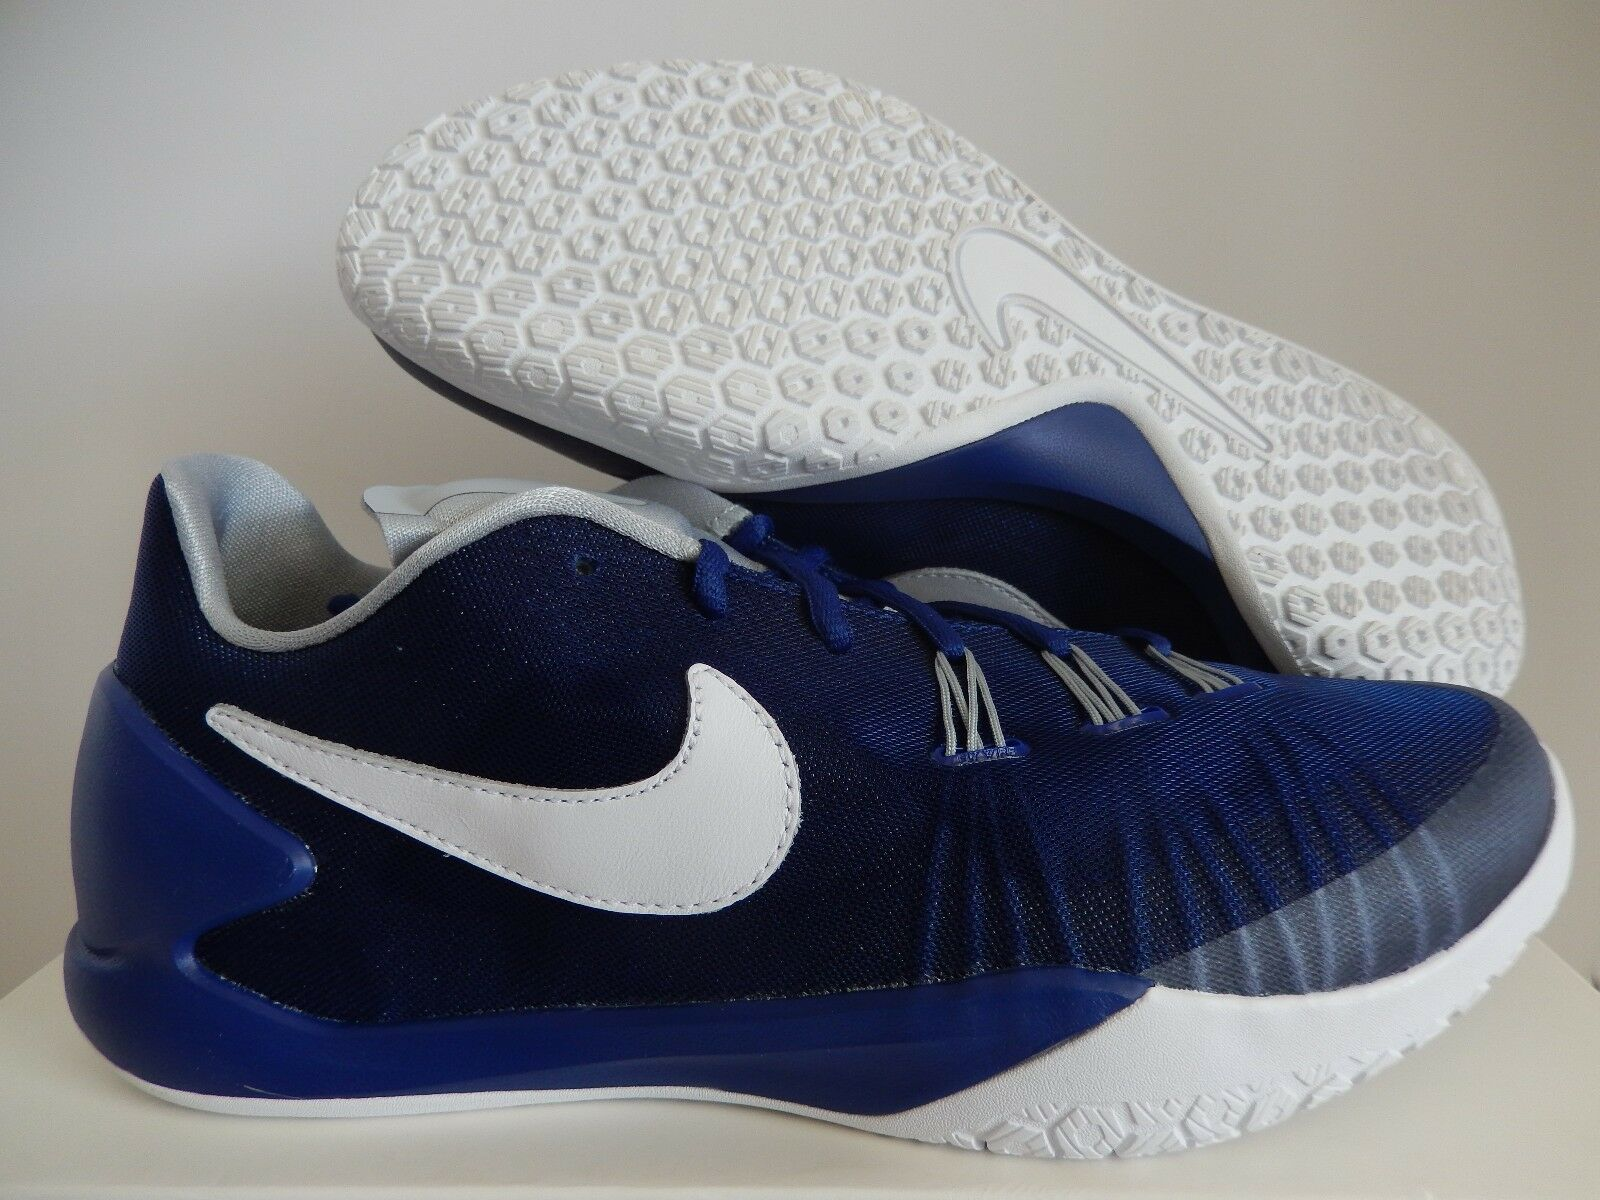 NIKE HYPERCHASE SP FRAGMENT DEEP ROYAL BLUE-WHITE-WOLF GREY SZ 11 [789486-410]